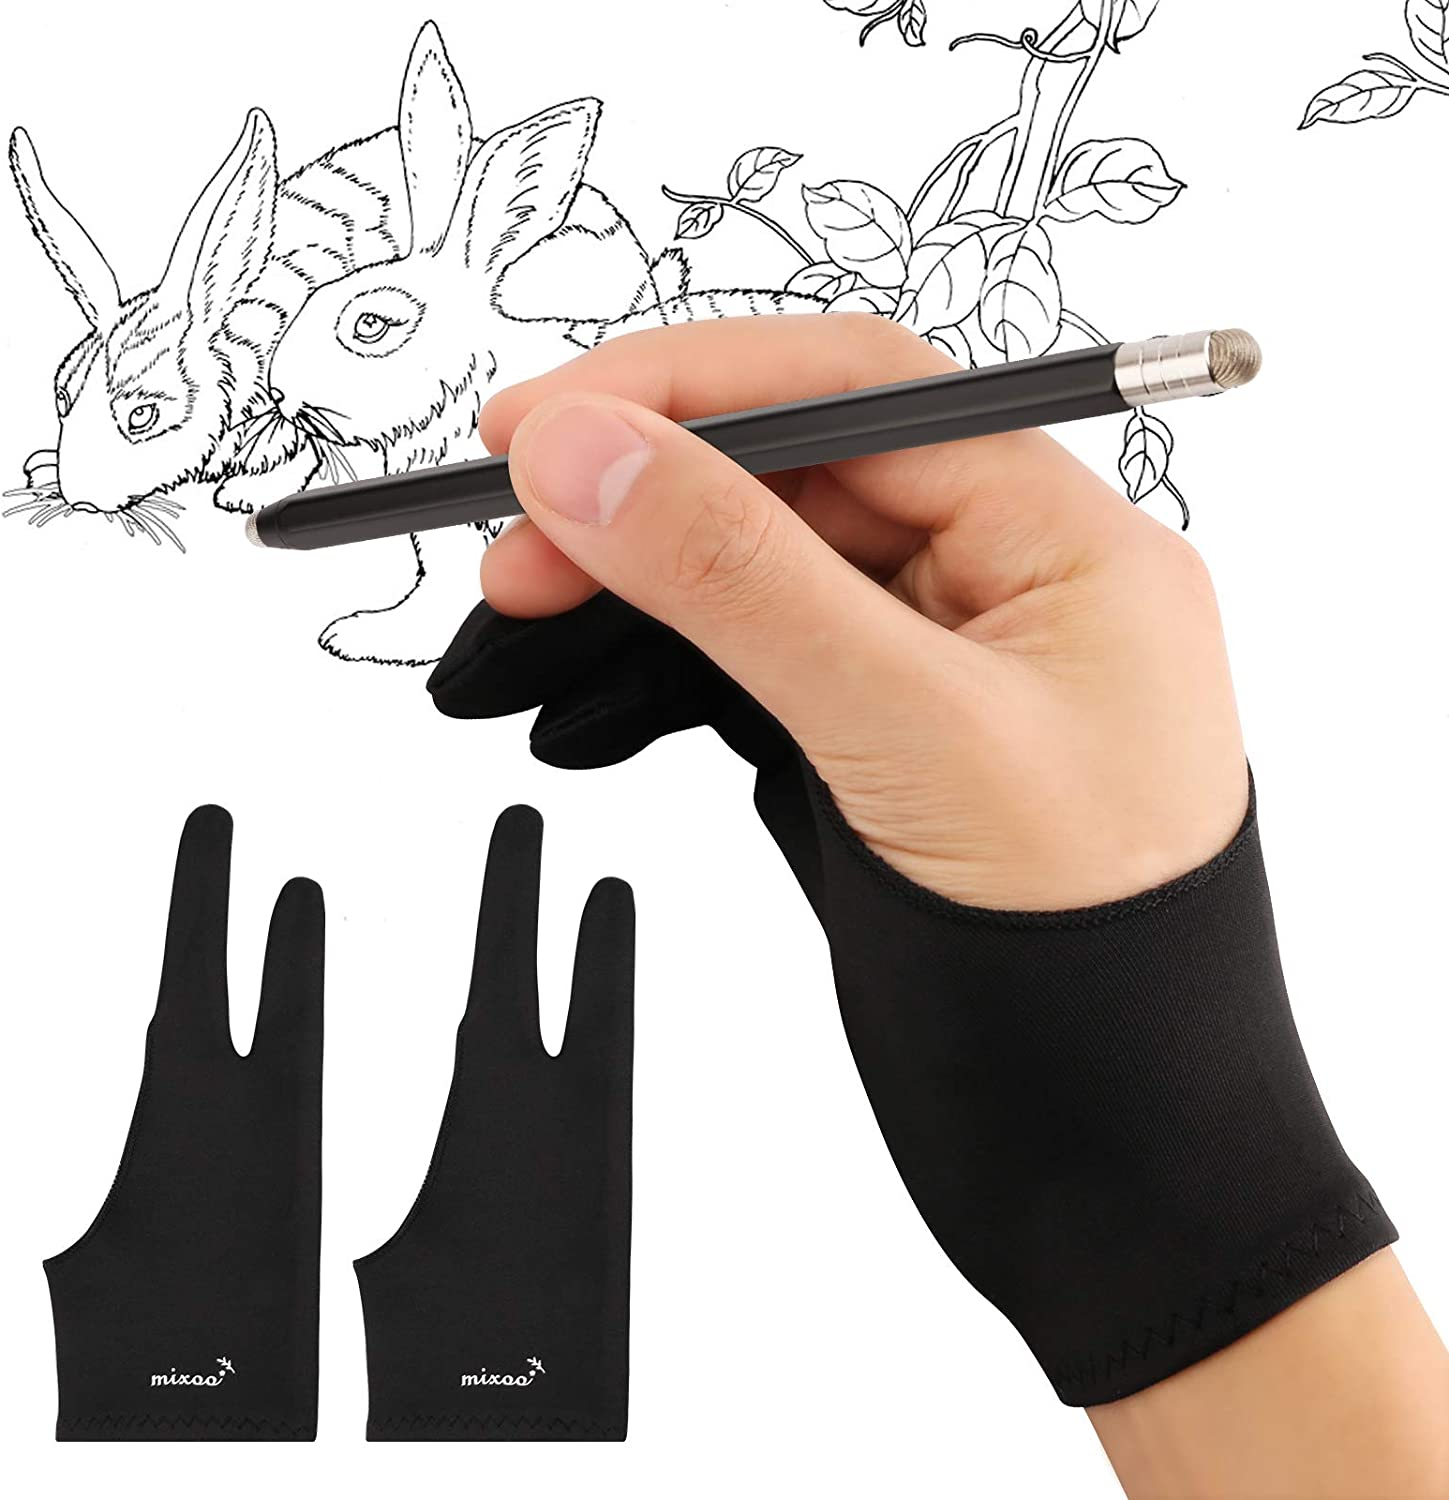 Mixoo Artist Gloves for Drawing Tablet 2 Pack - Palm Rejection Drawing Gloves with Two Fingers for Paper Sketching, iPad, Graphics Painting, Good for Left and Right Hand (M)